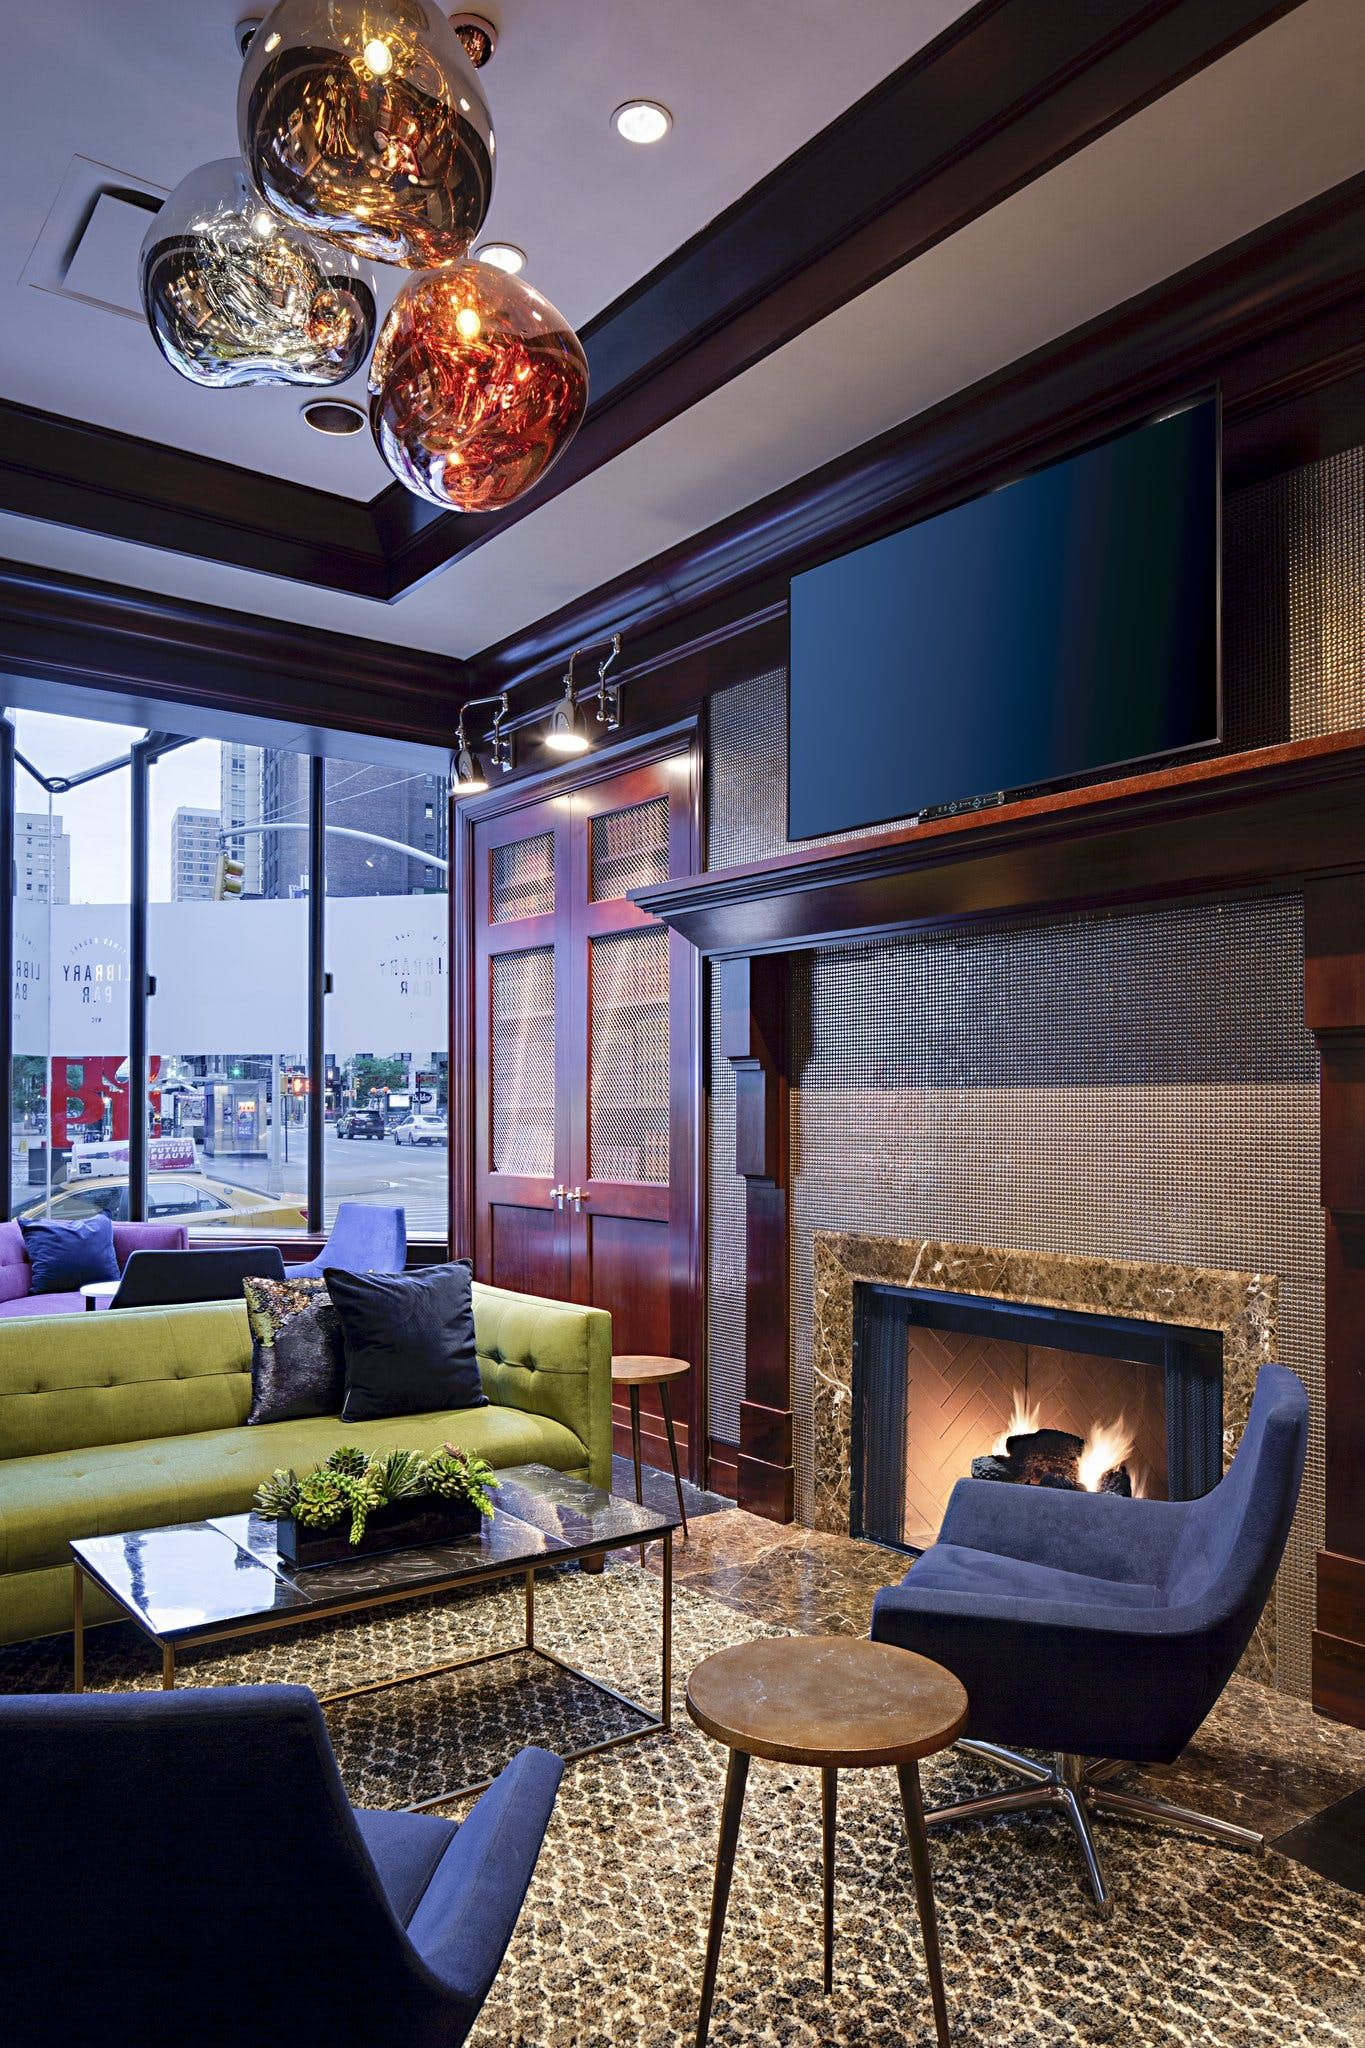 Library Bar Seating Area Fireplace Suites at Sheraton